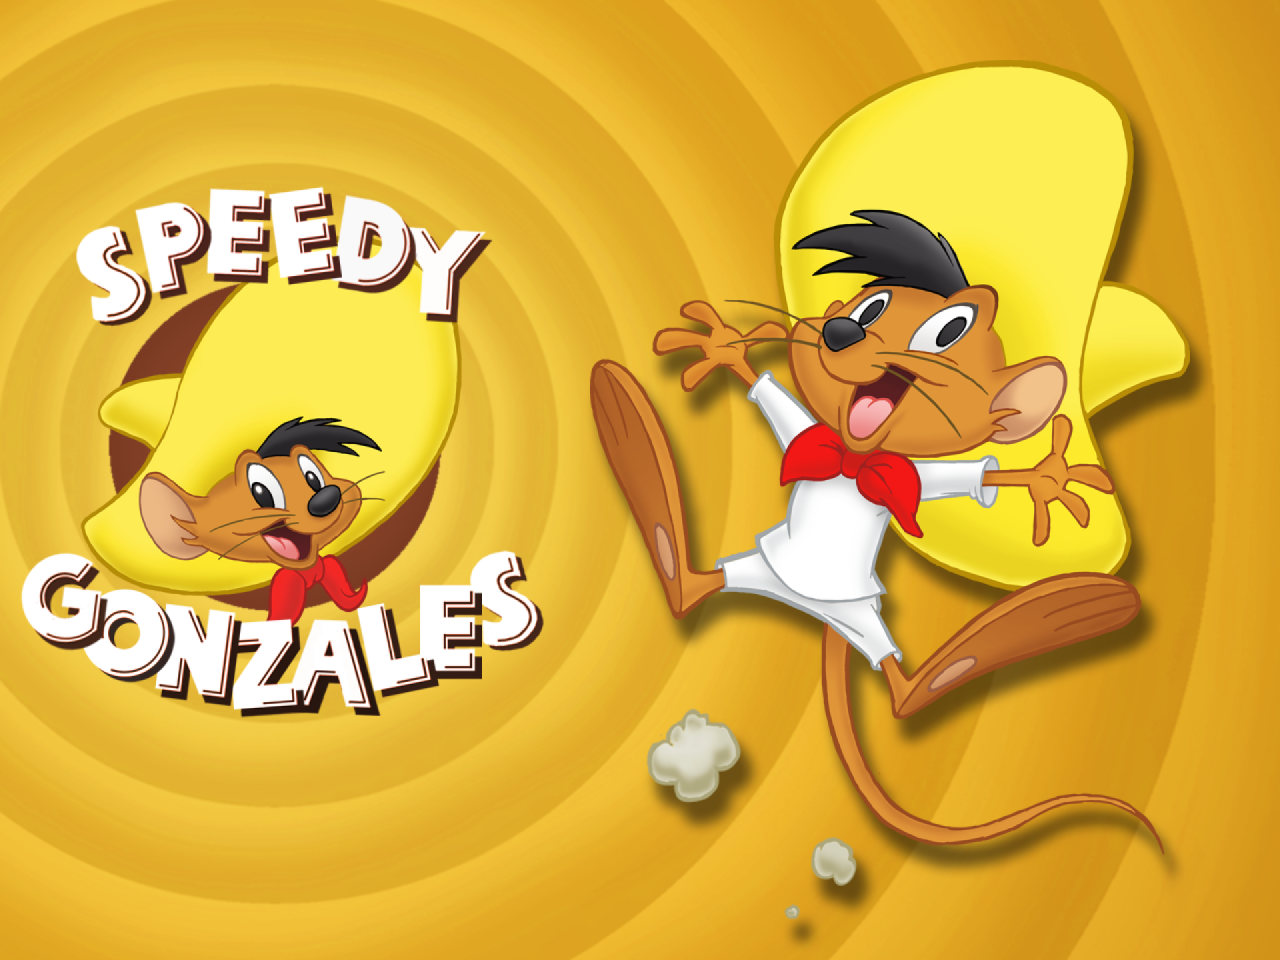 Speedy Gonzales One wallpapers